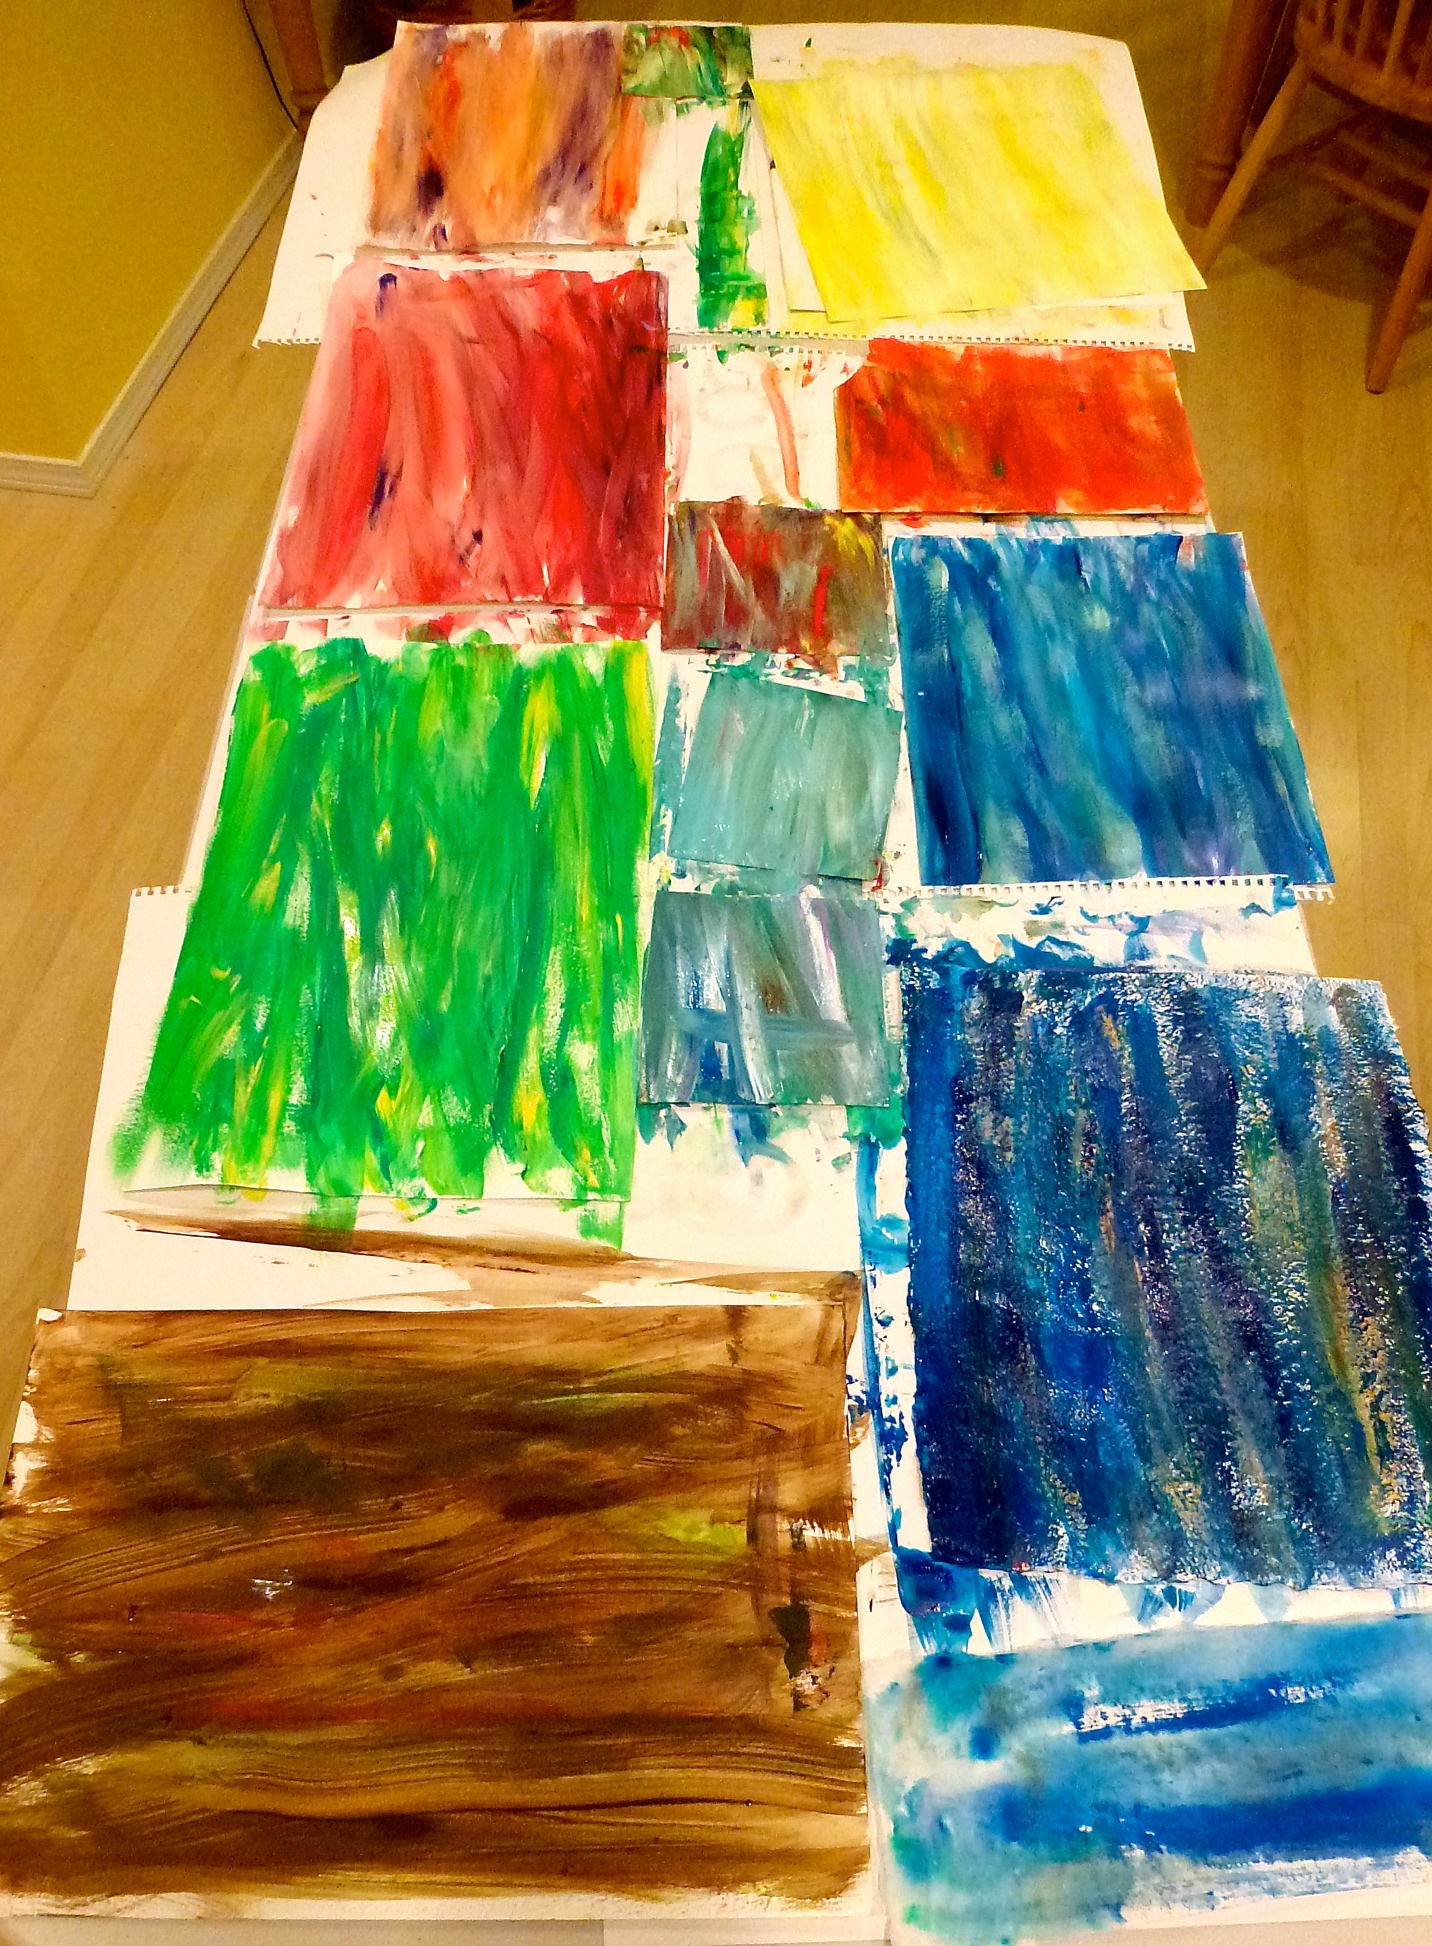 Painting Papers For Hannah and Hagar's Stories